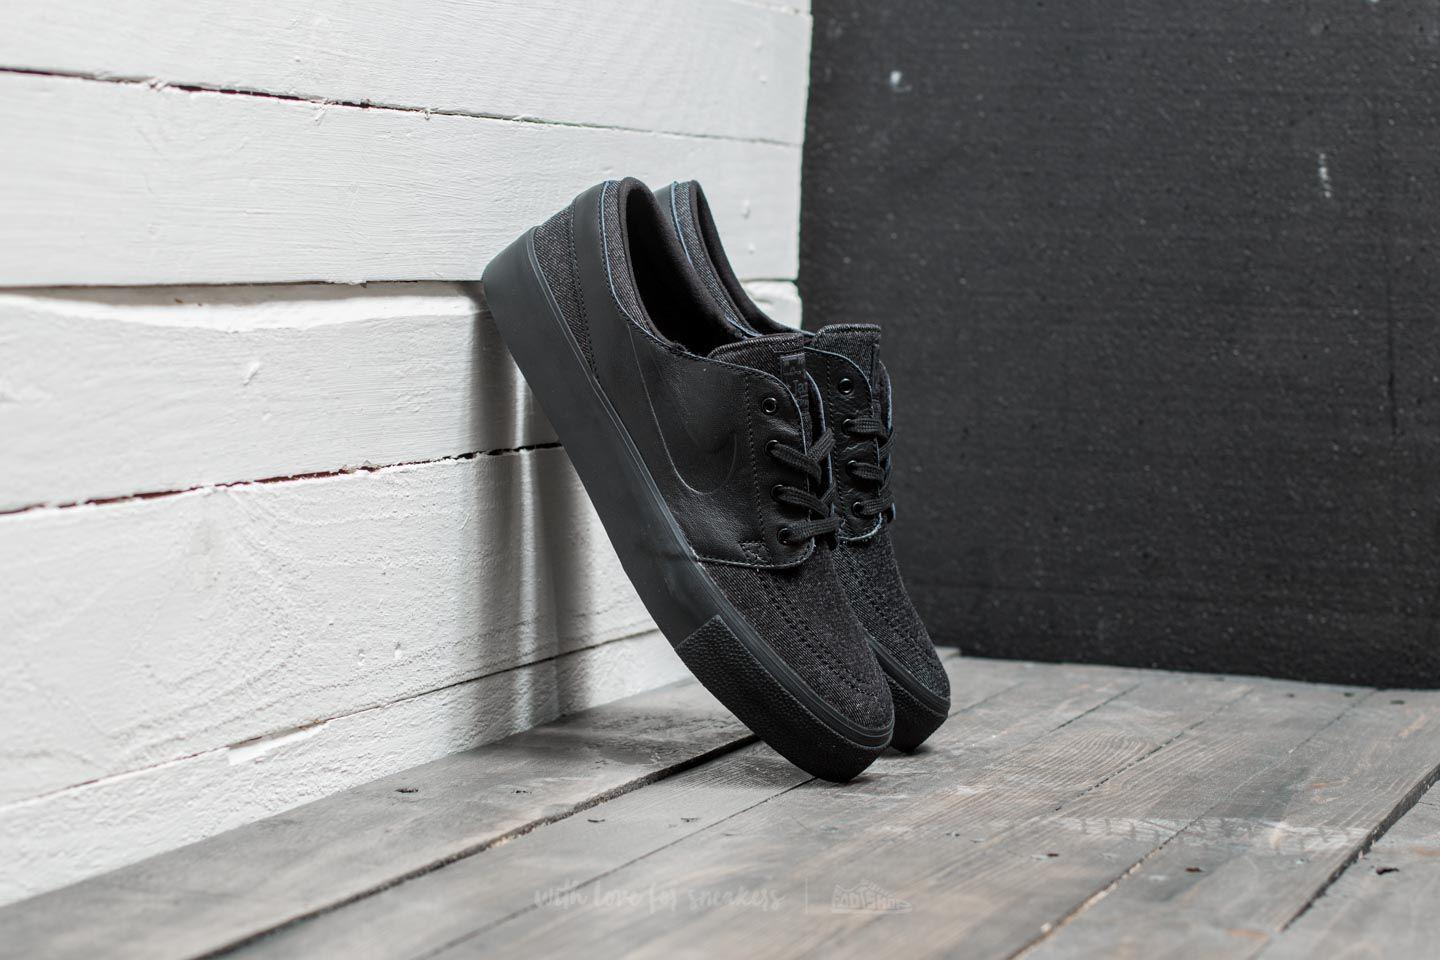 reputable site c87c5 4b55b Nike Zoom Stefan Janoski Elite Ht Black  Black-anthracite-sail in ...